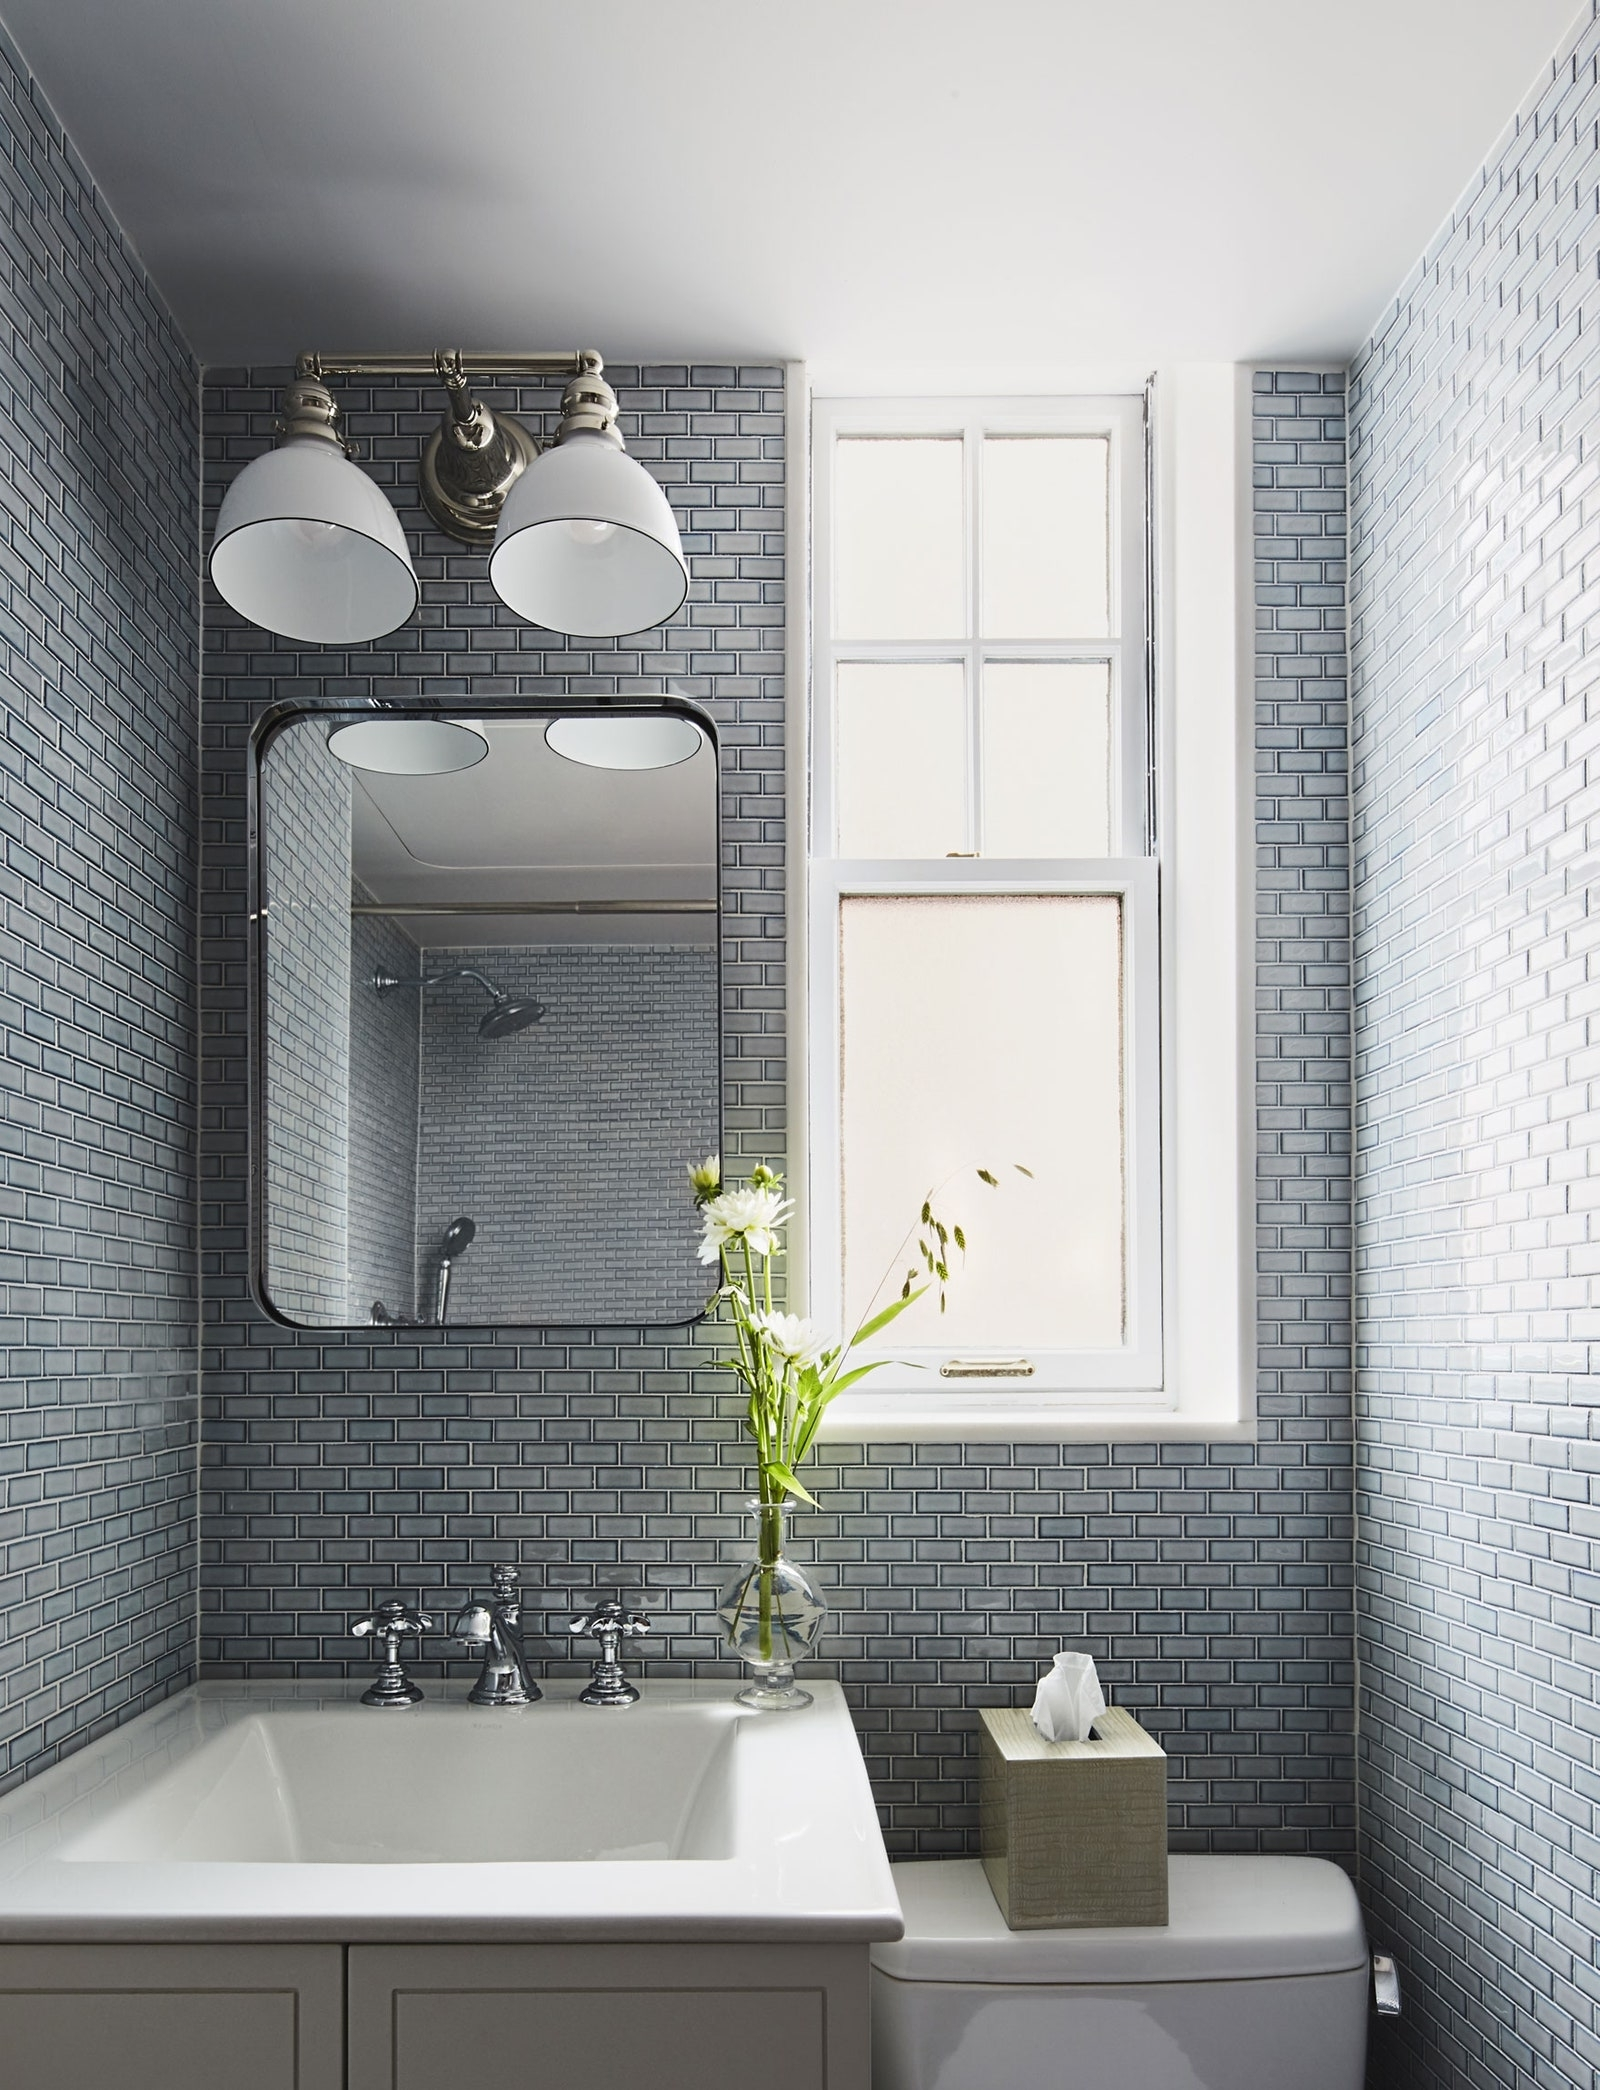 33 Small Bathroom Ideas To Make Your Bathroom Feel Bigger 20+ Small Windowless Bathroom Decorating Ideas